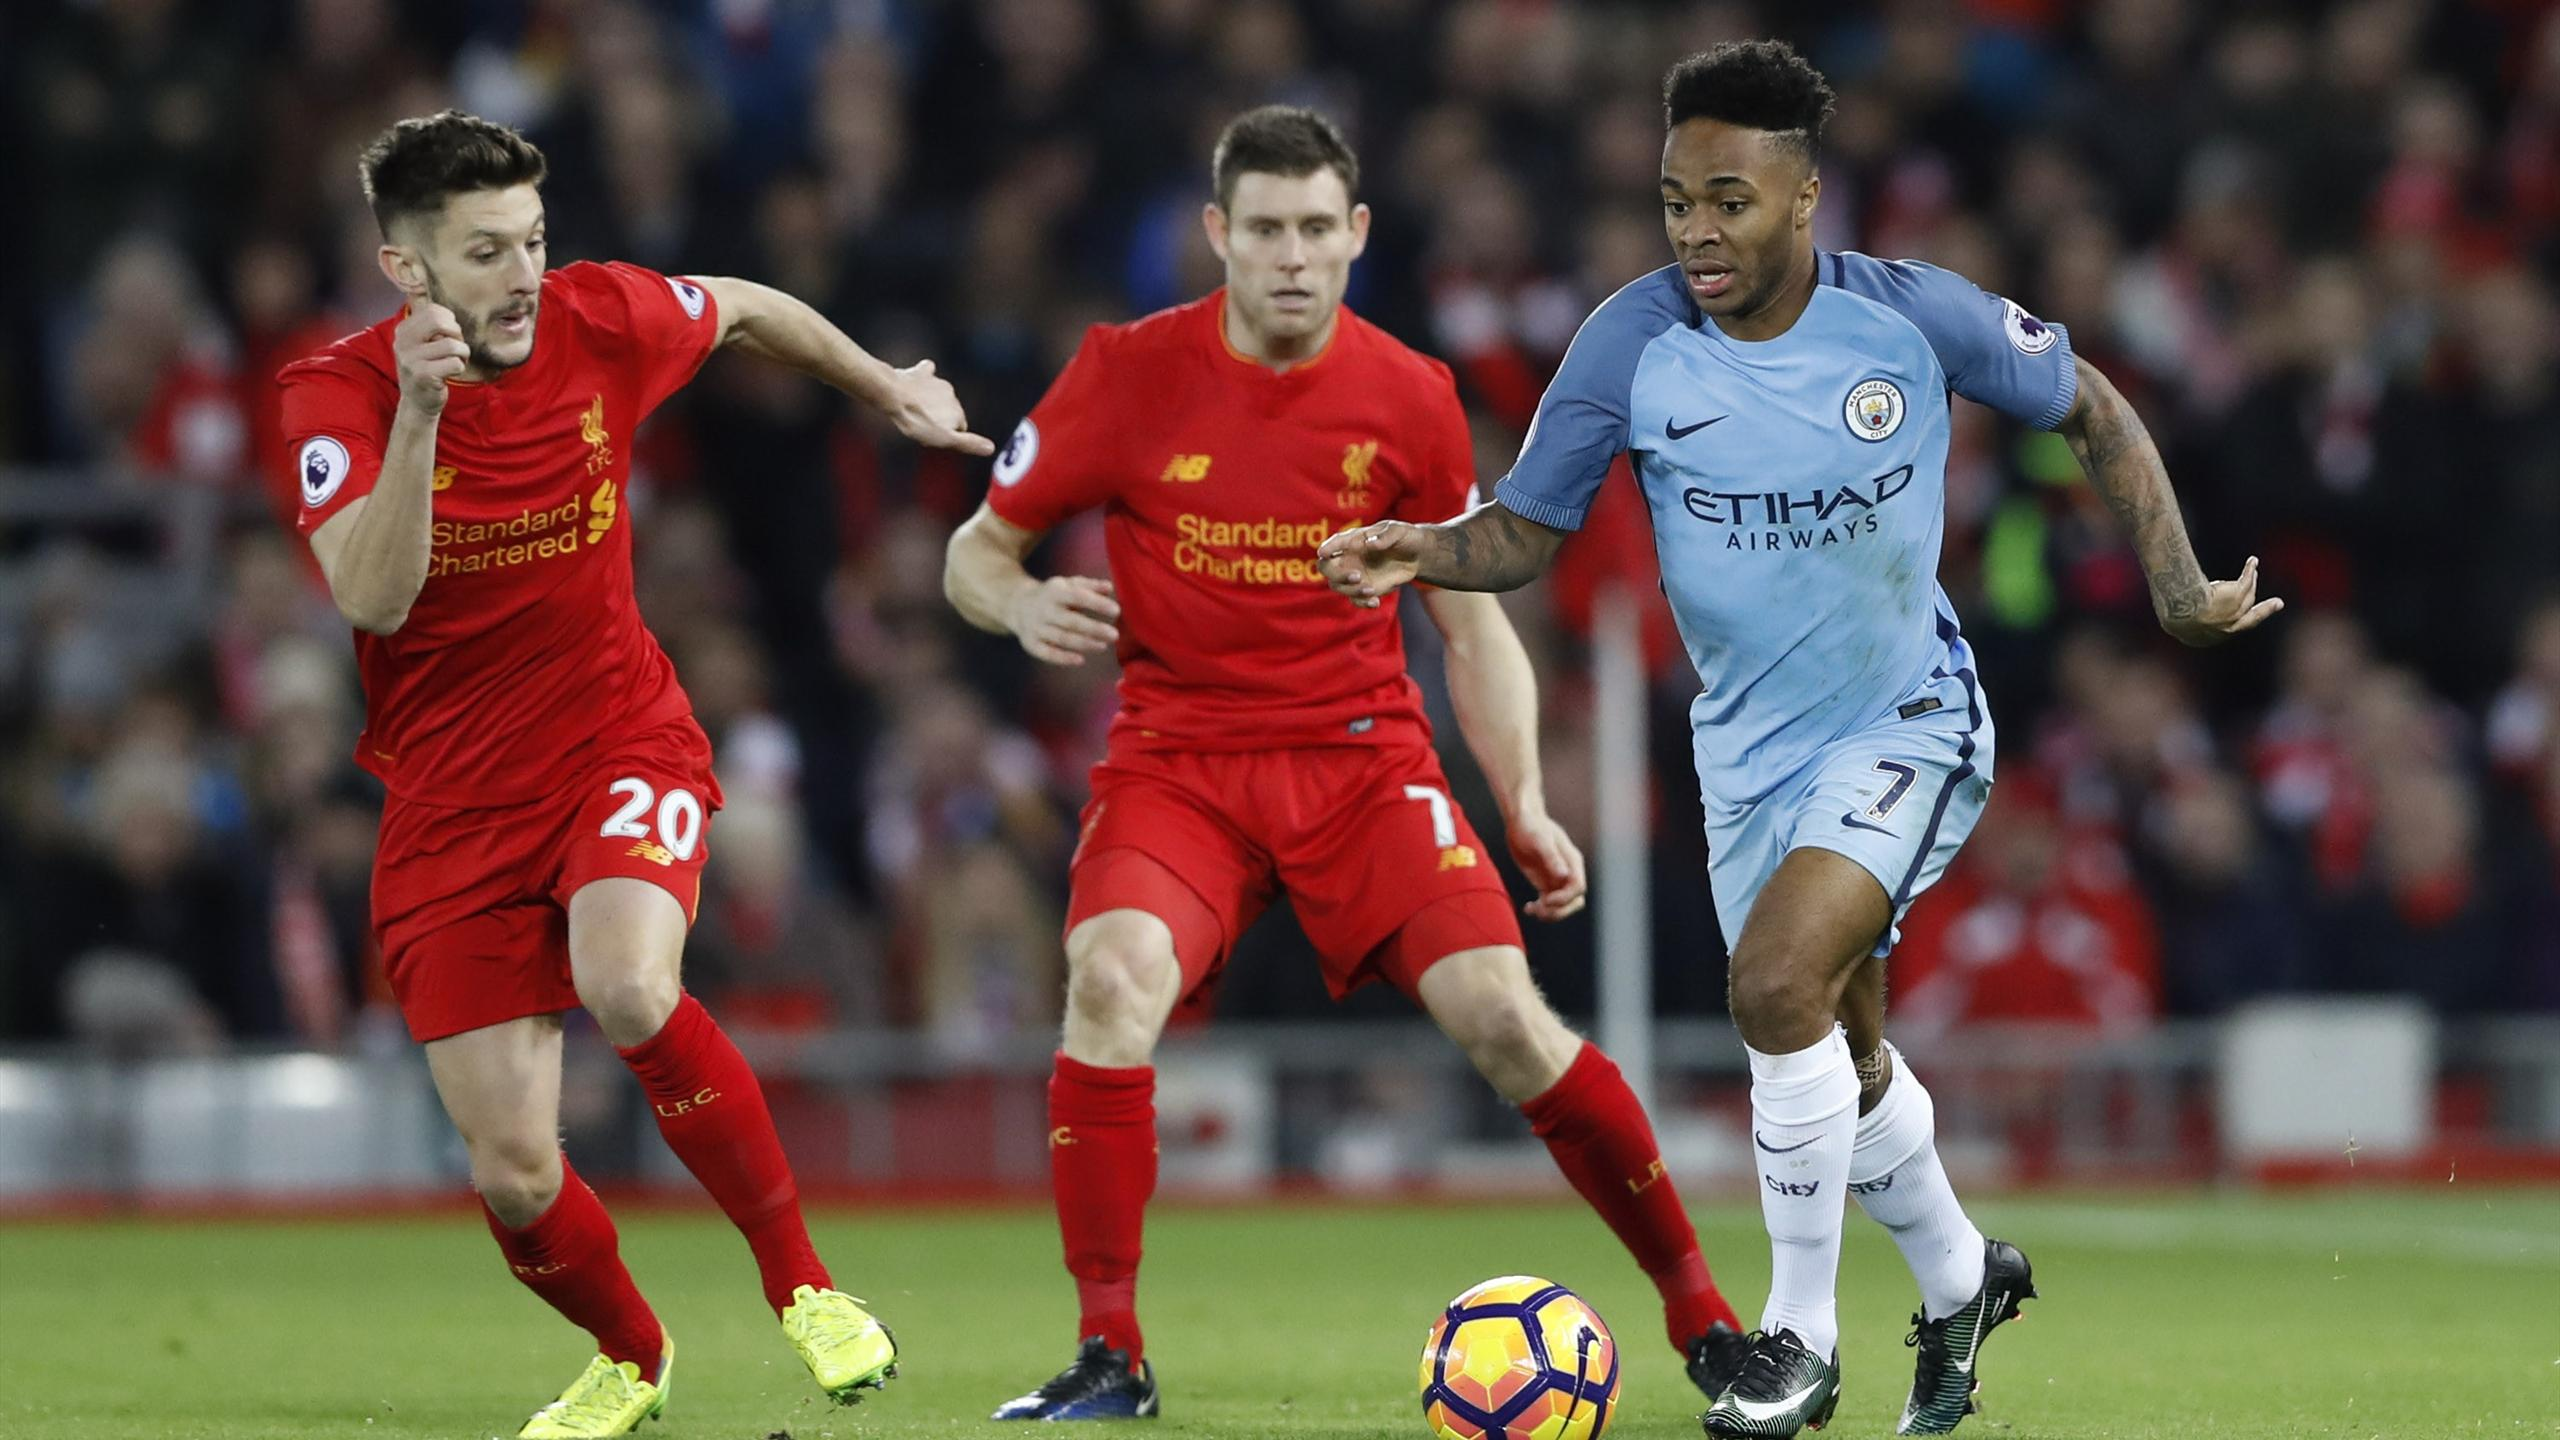 Raheem Sterling in action with Liverpool's James Milner and Adam Lallana